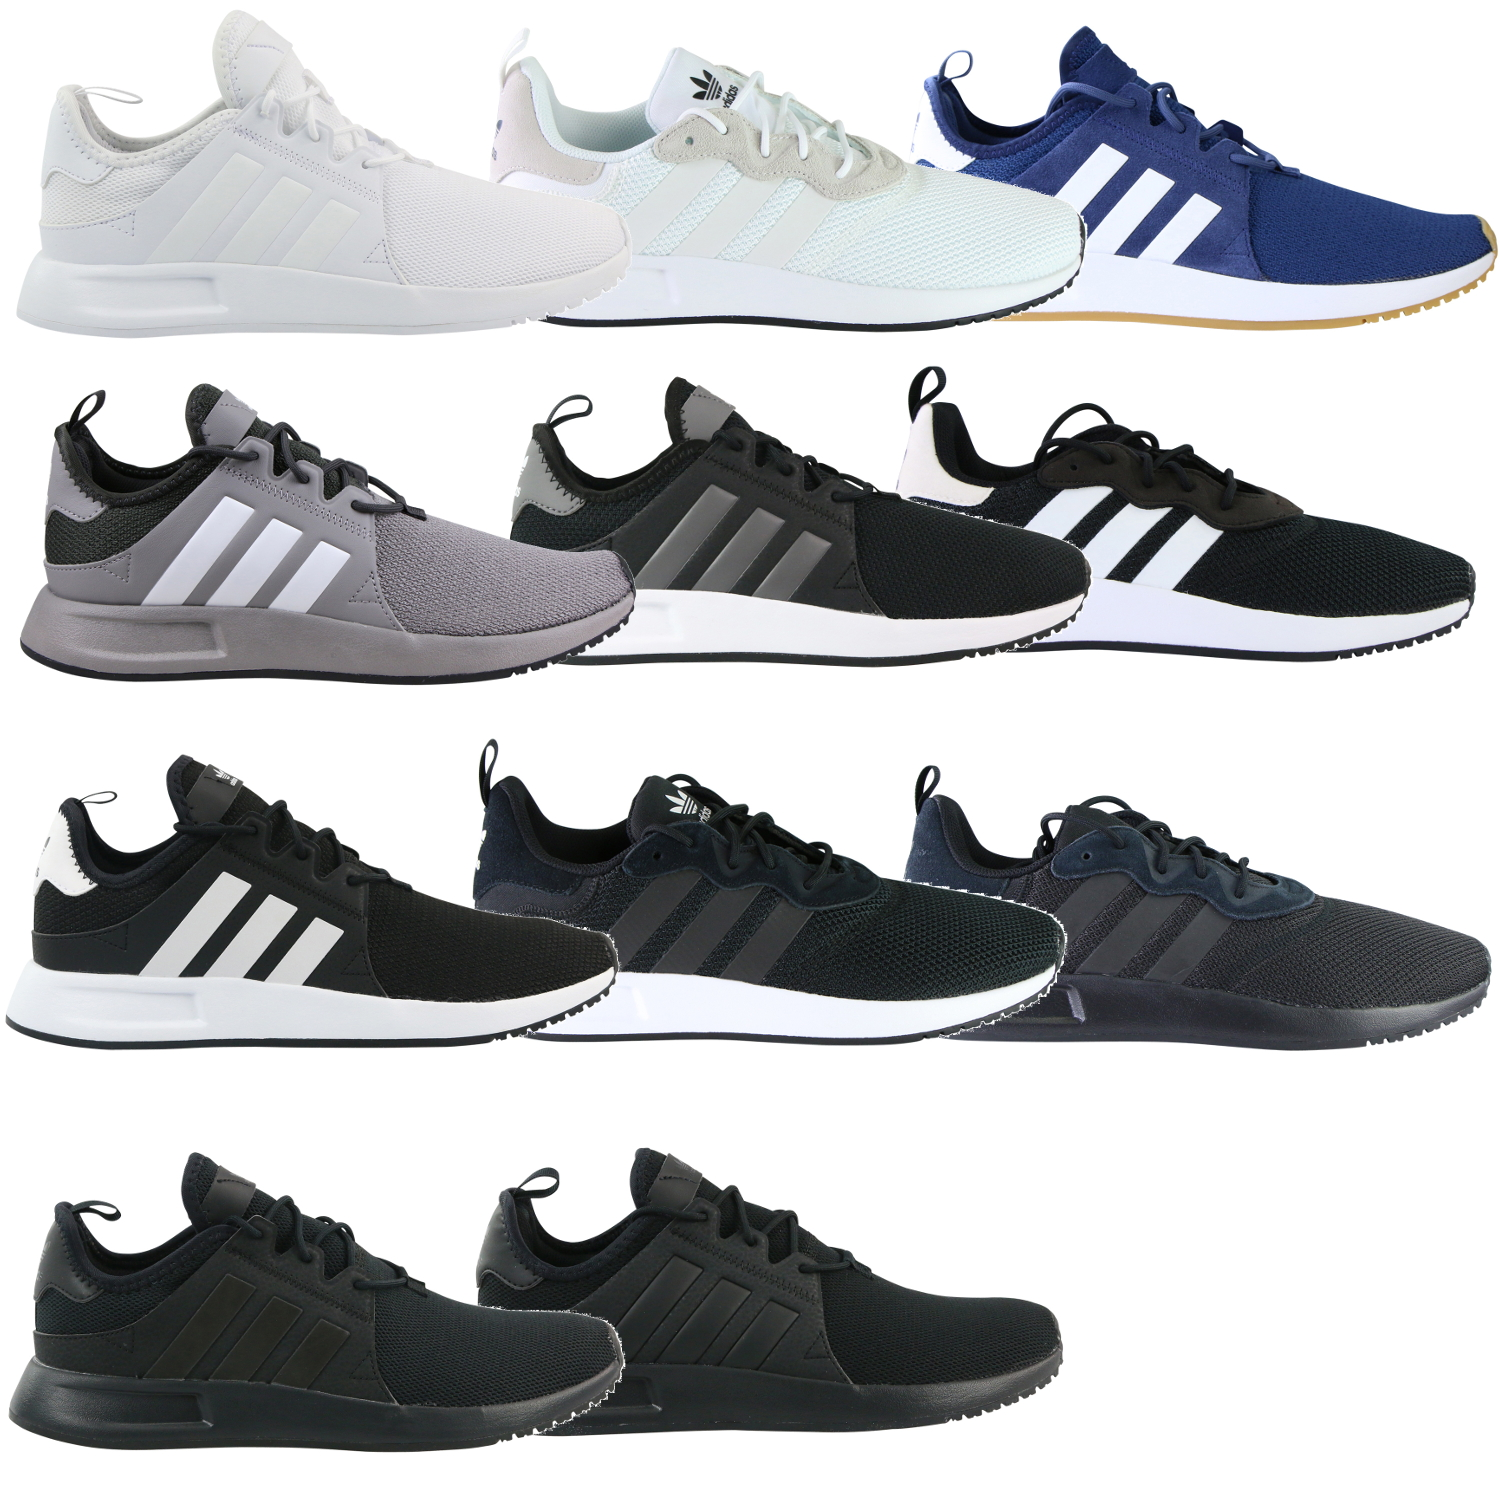 adidas originals x plr schuhe turnschuhe sneaker herren. Black Bedroom Furniture Sets. Home Design Ideas